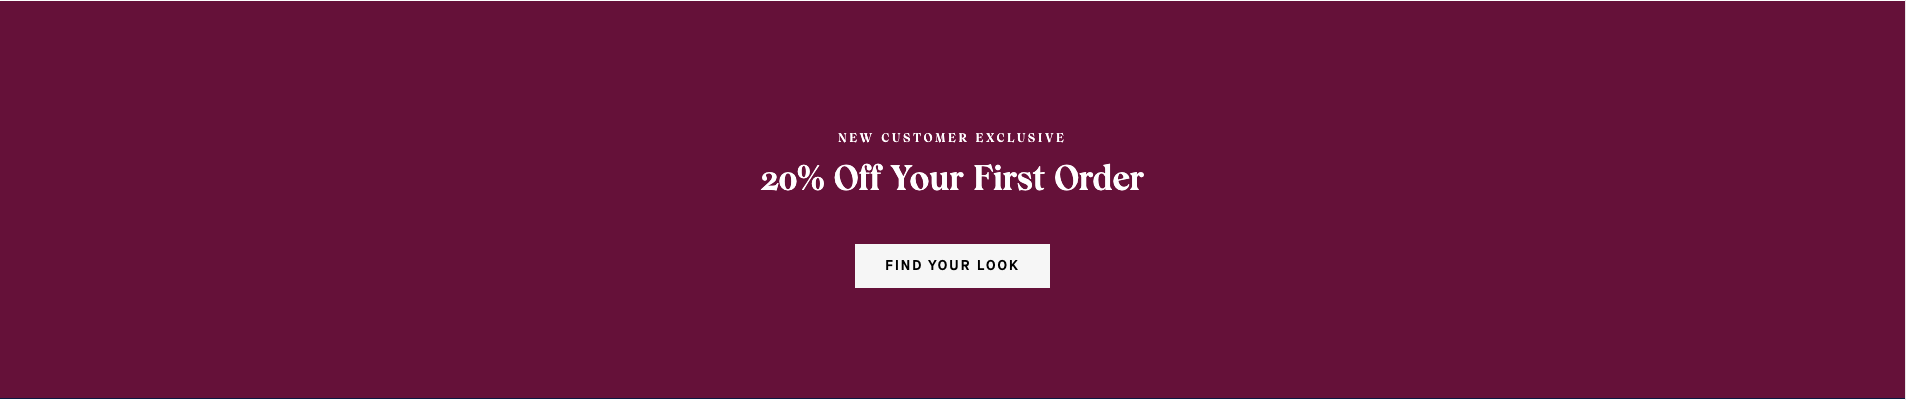 Example of an automatic discount for the first order